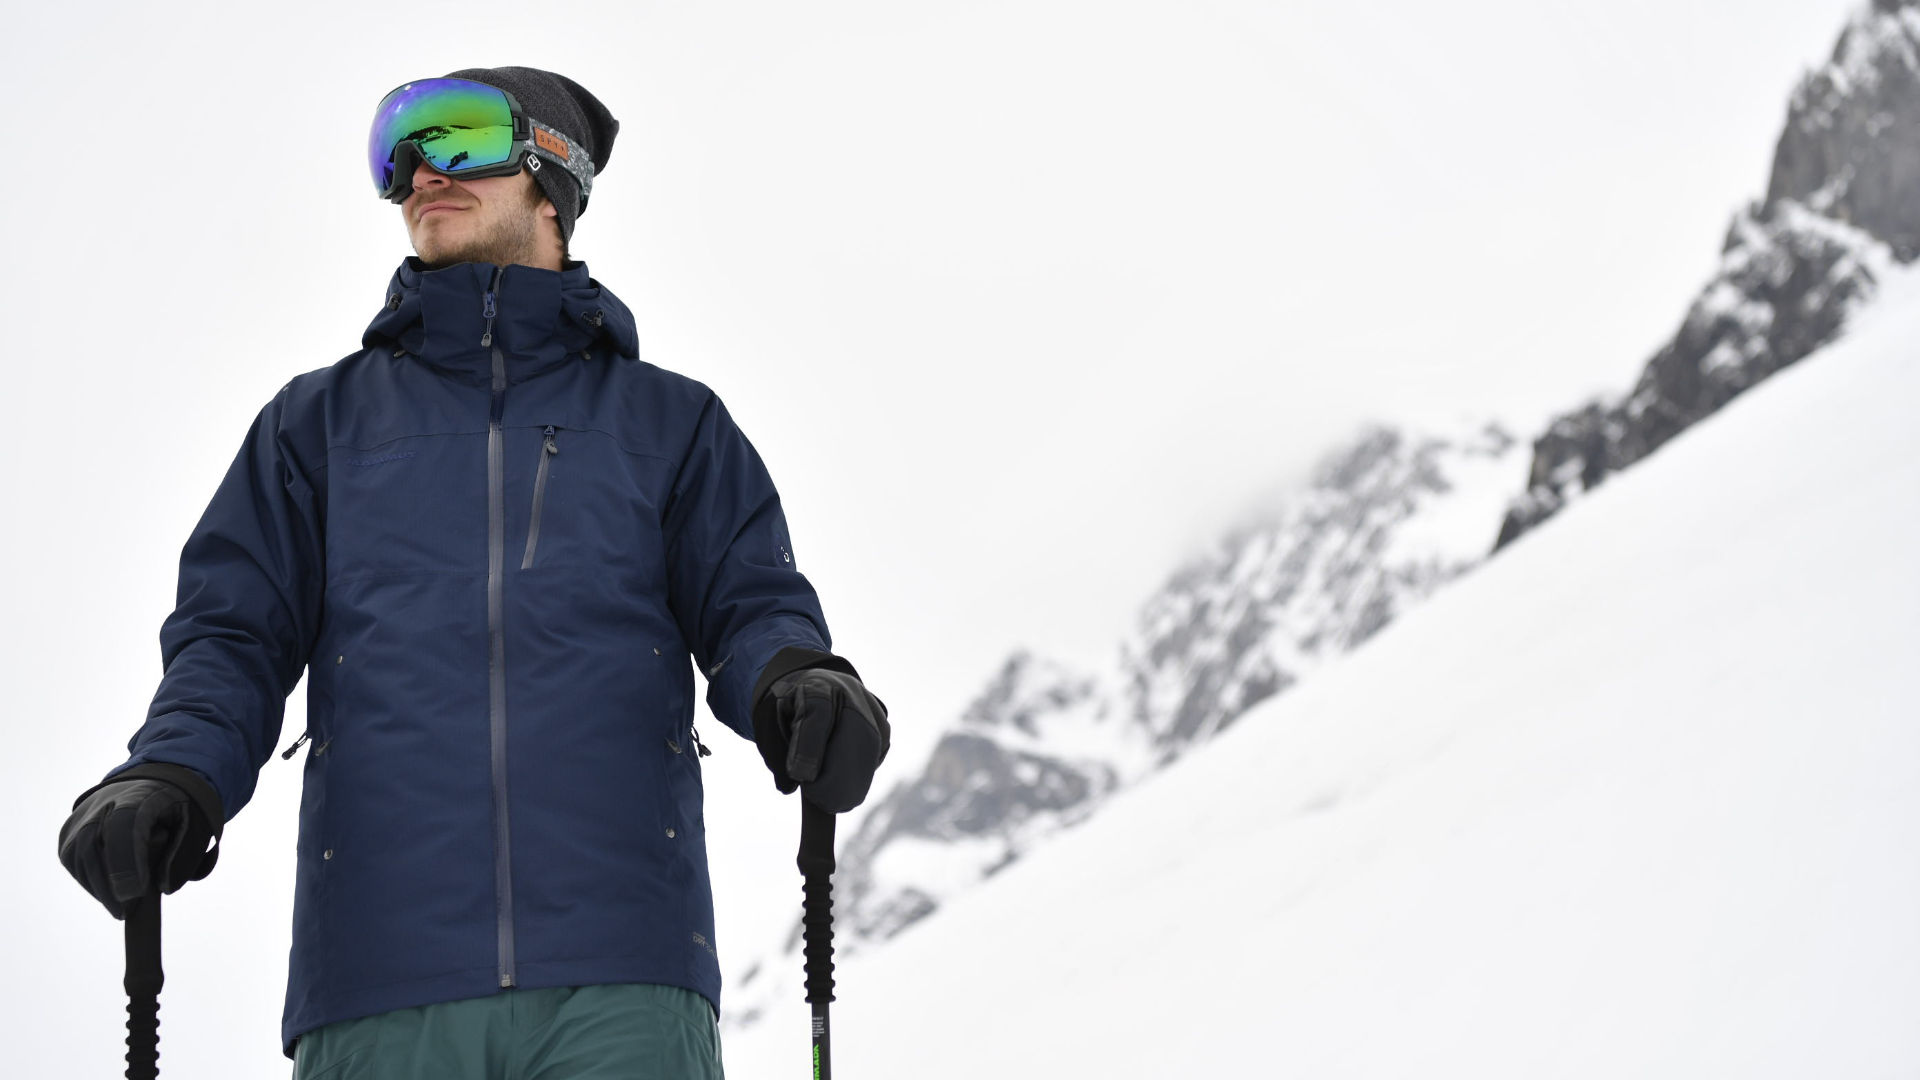 A slim fit jacket from Mammut